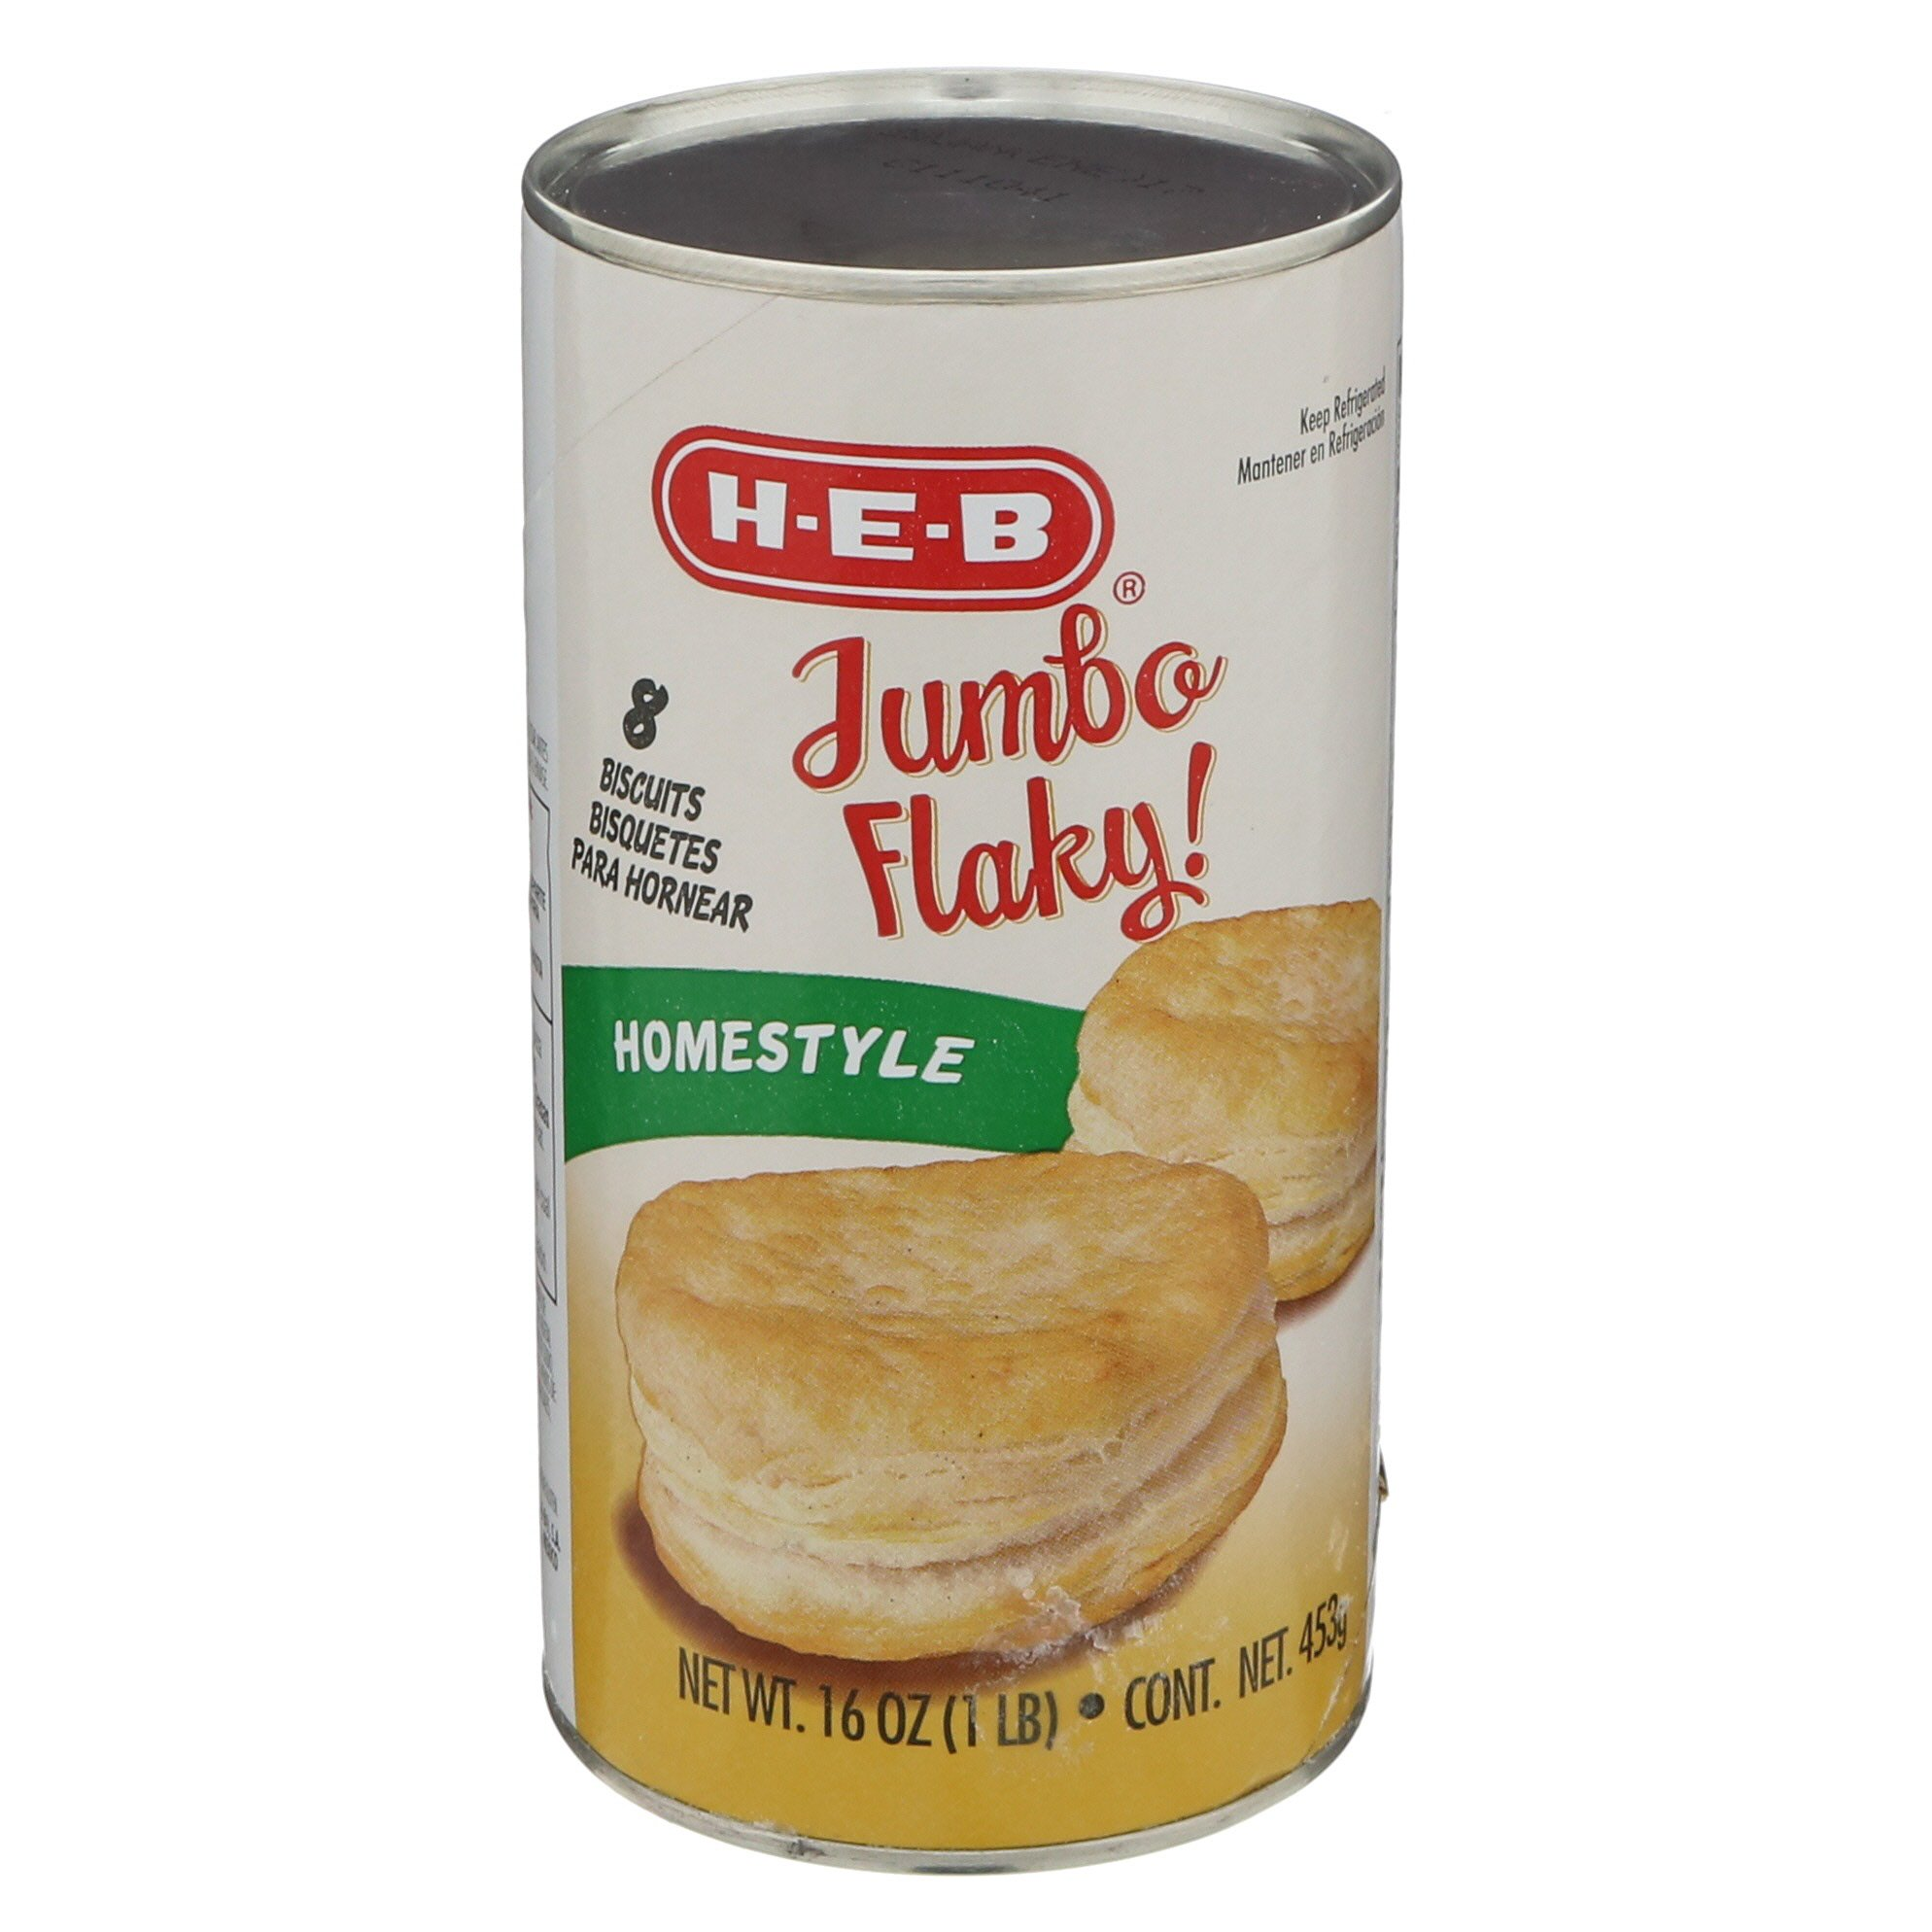 Hill Country Fare Jumbo Flaky Homestyle Biscuits ‑ Shop Biscuits